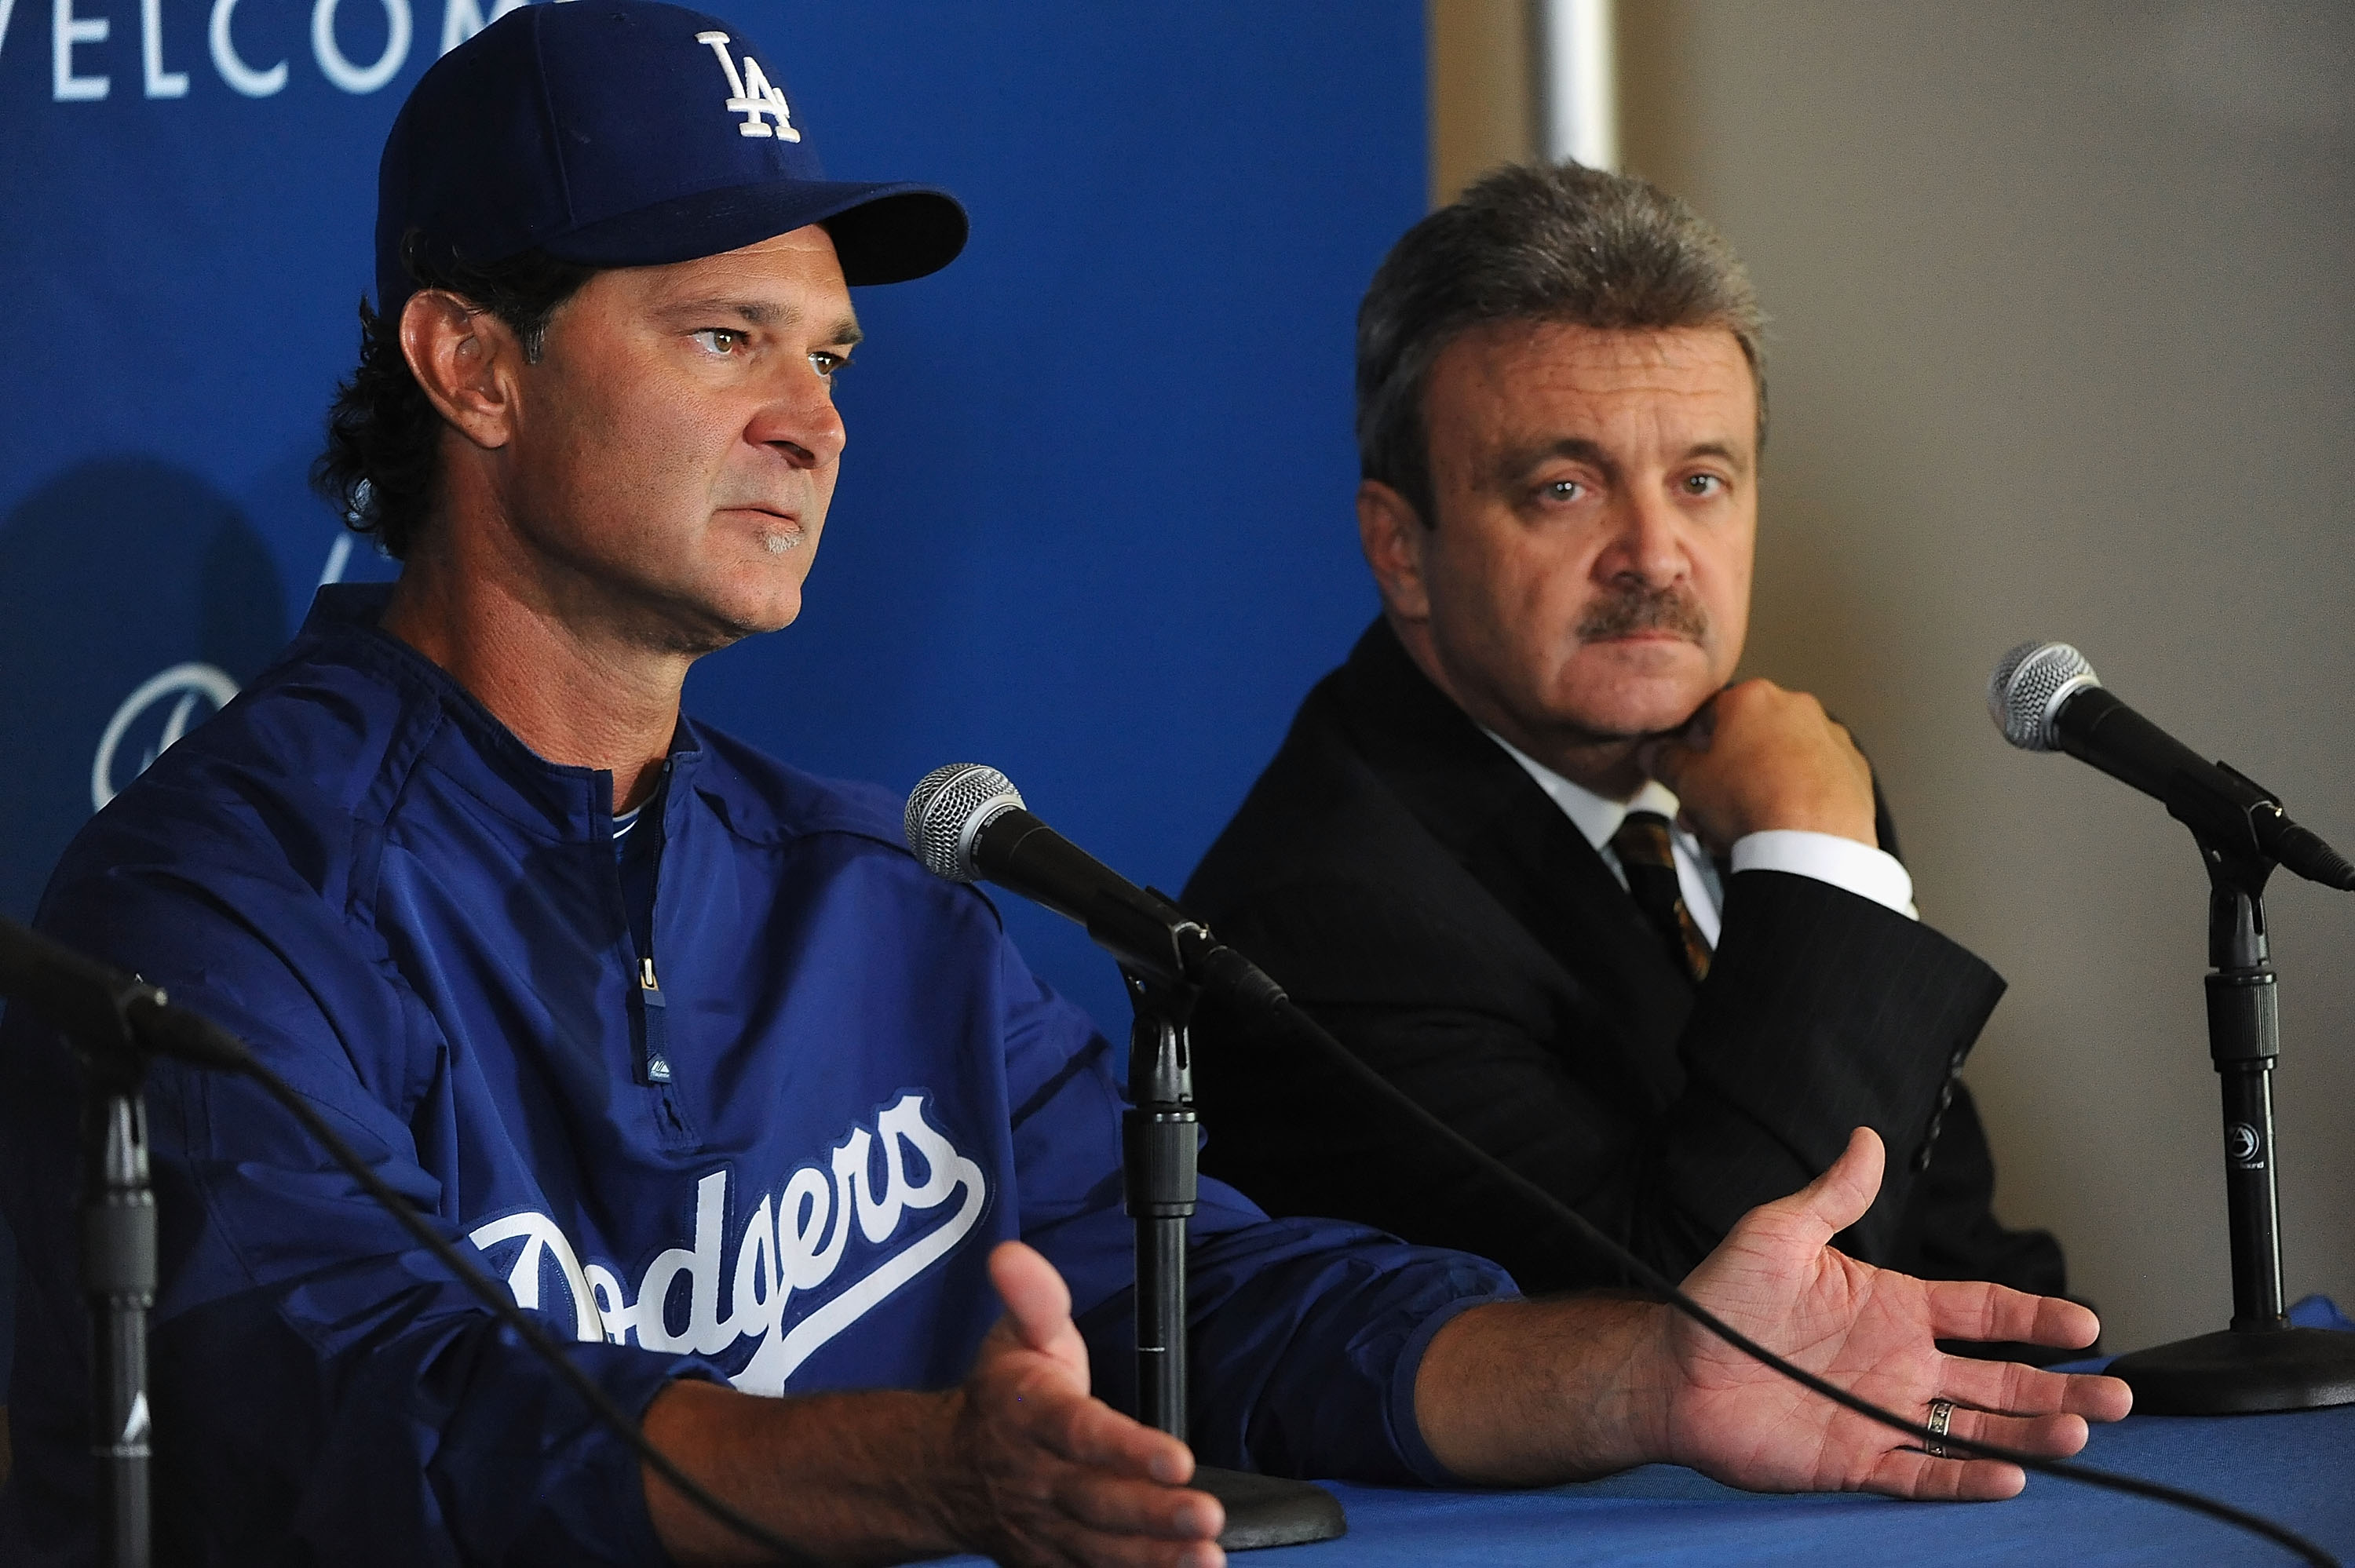 LOS ANGELES, CA - SEPTEMBER 17:  Coach Don Mattingly (L) and general manager Ned Colletti of the Los Angeles Dodgers attend a press conference announcing that Mattingly will manage the Dodgers in 2011 after Joe Torre retires at Dodger Stadium on September